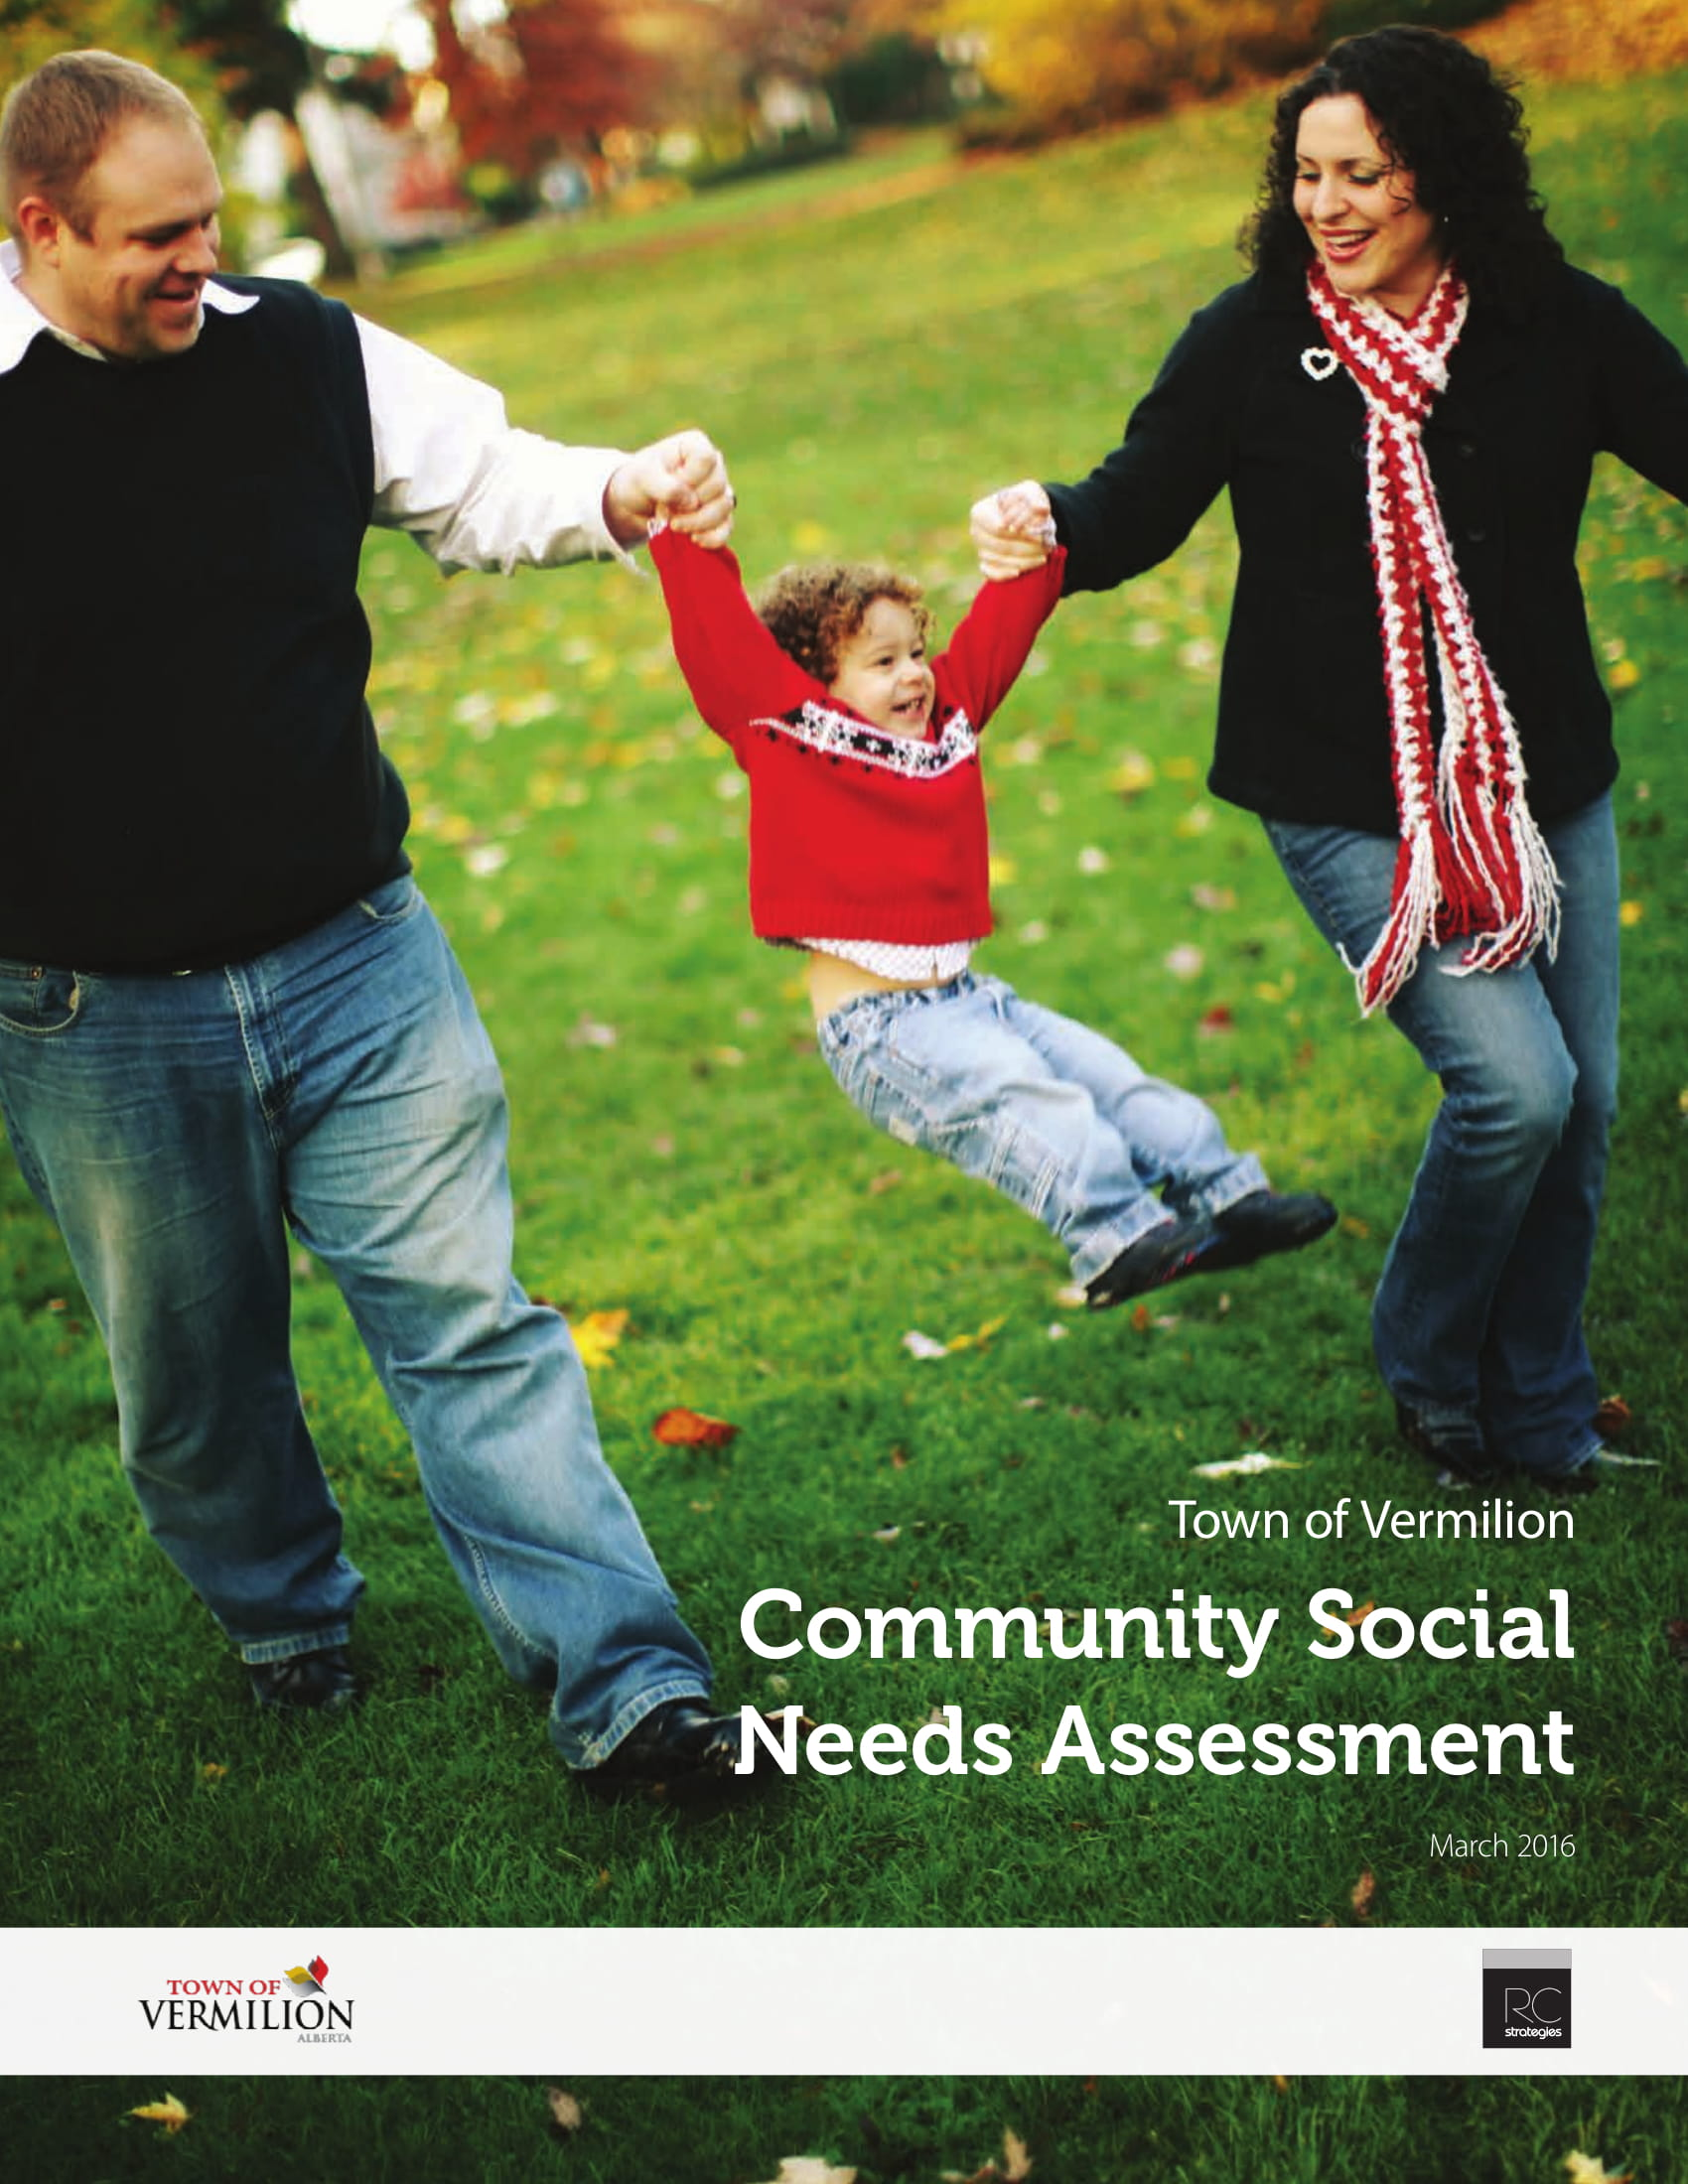 community social needs assessment example 01